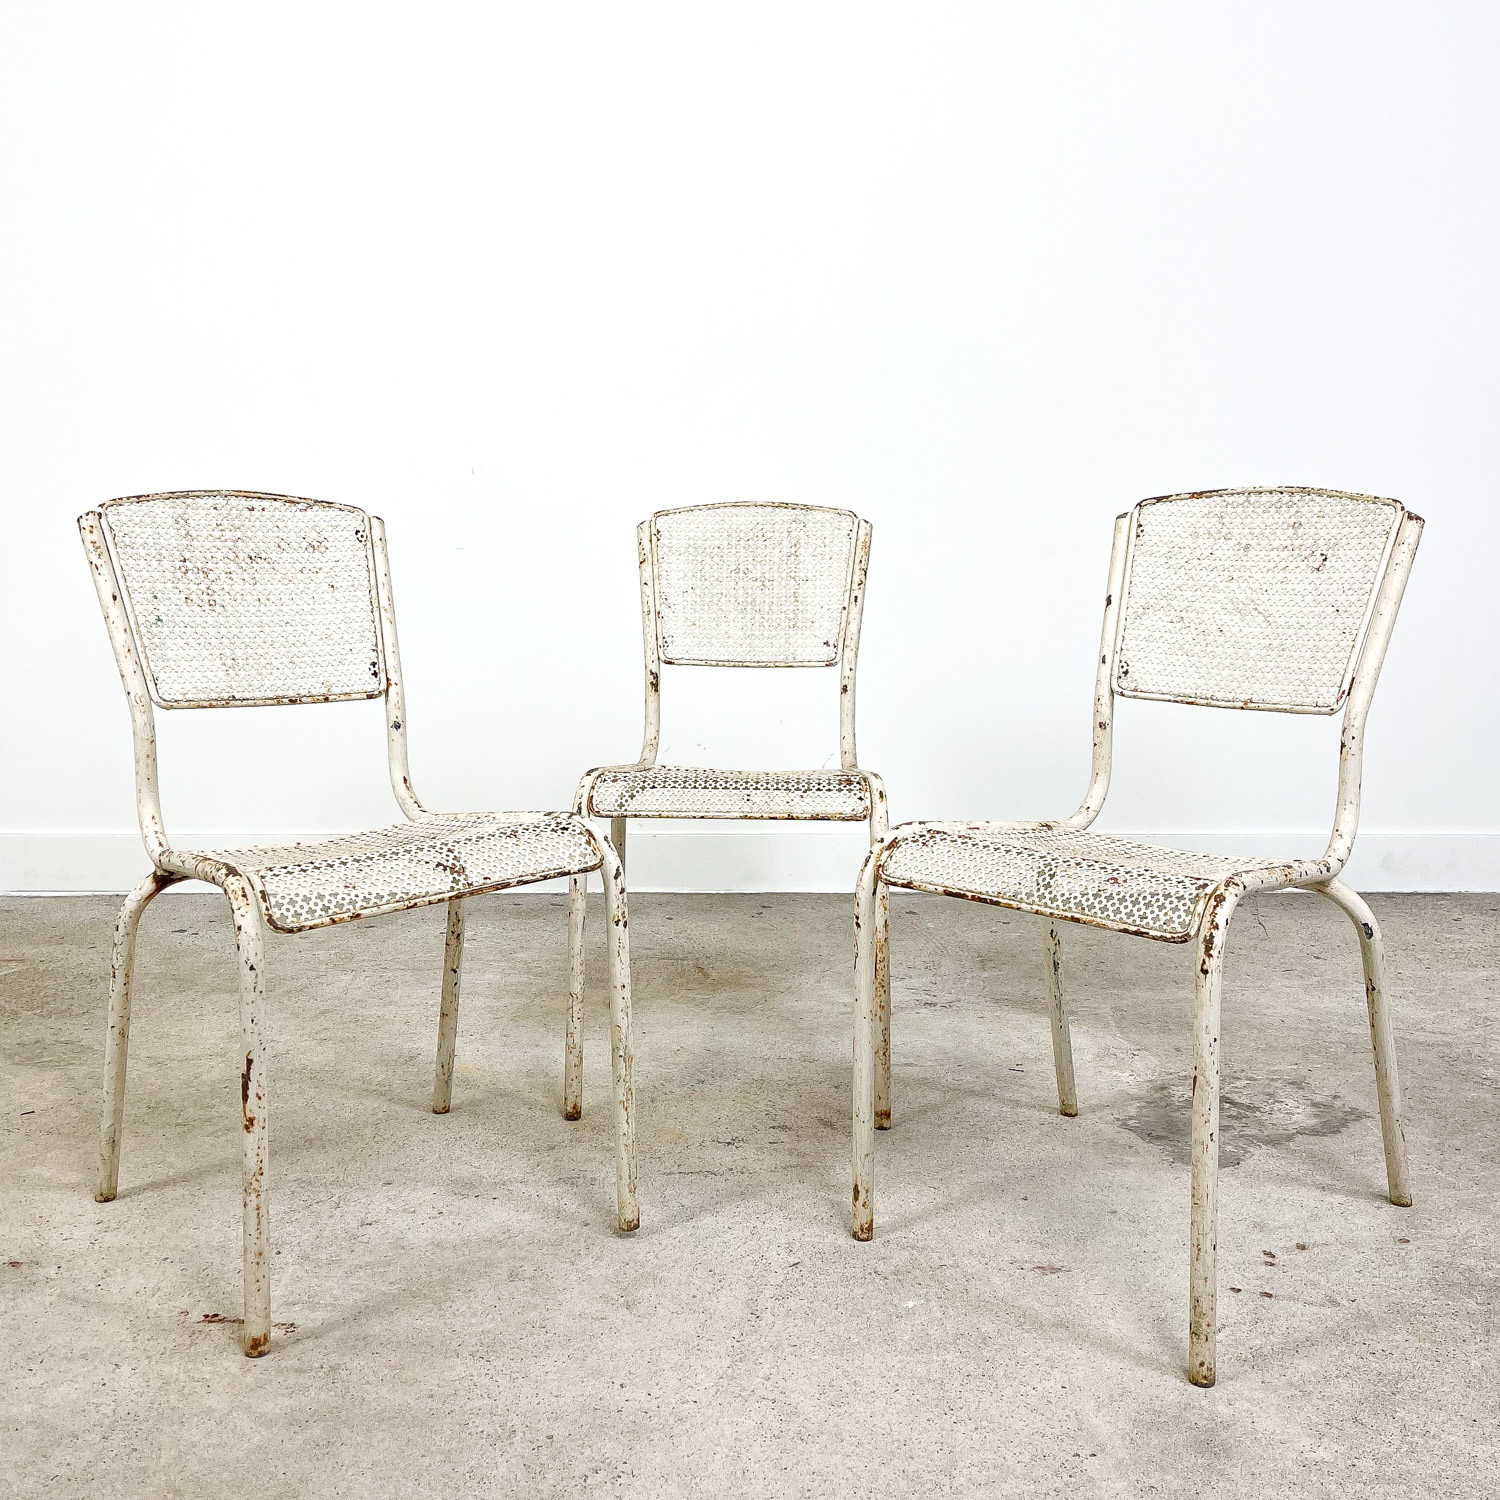 Set of three vintage industrial bistro chairs by Matieu Matego